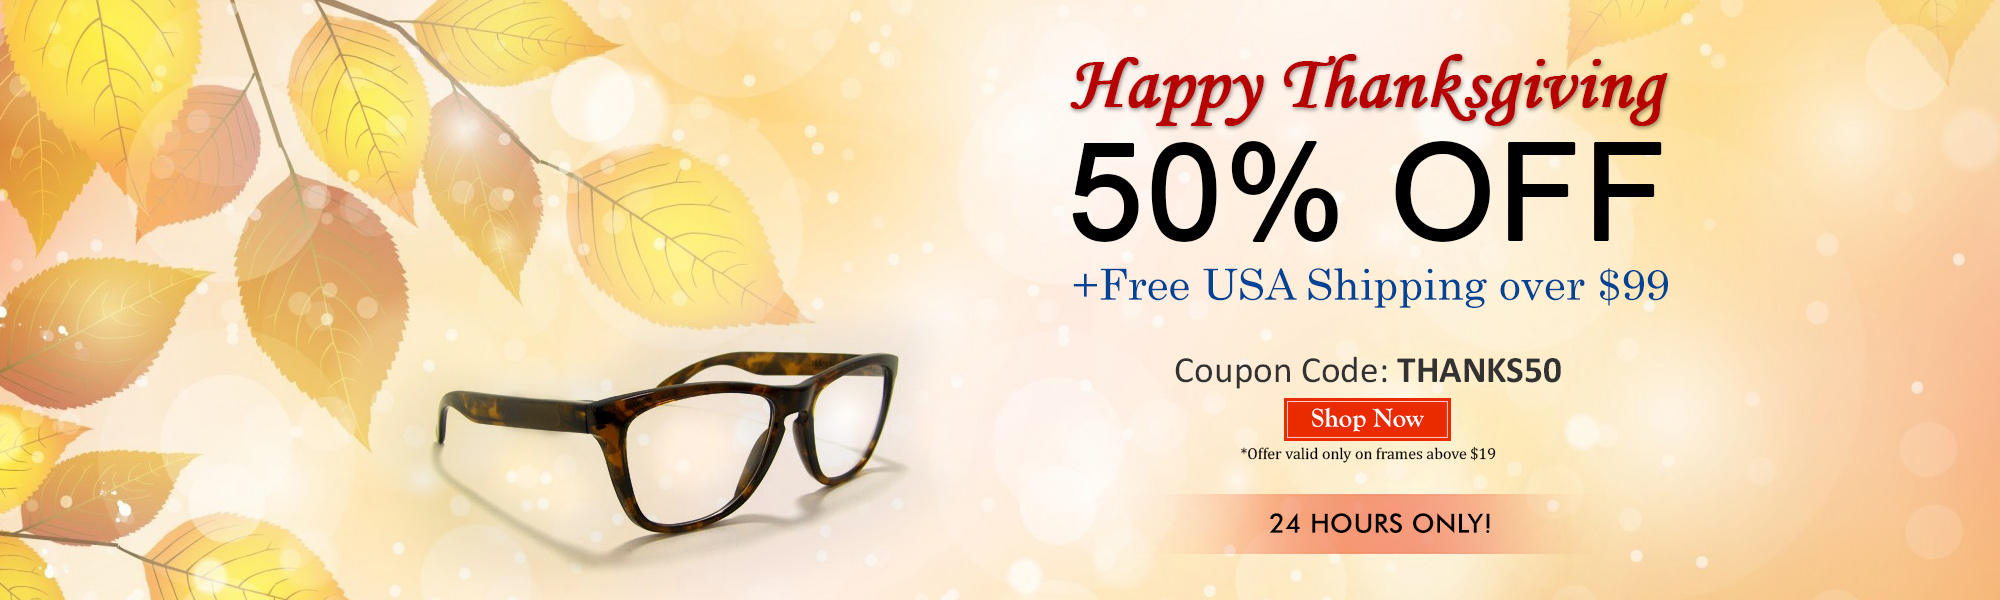 50% off all Prescription Eyeglasses and Sunglasses over $19 including standard single vision lenses only and Free Shipping on Orders Over $99! On Thanks Giving